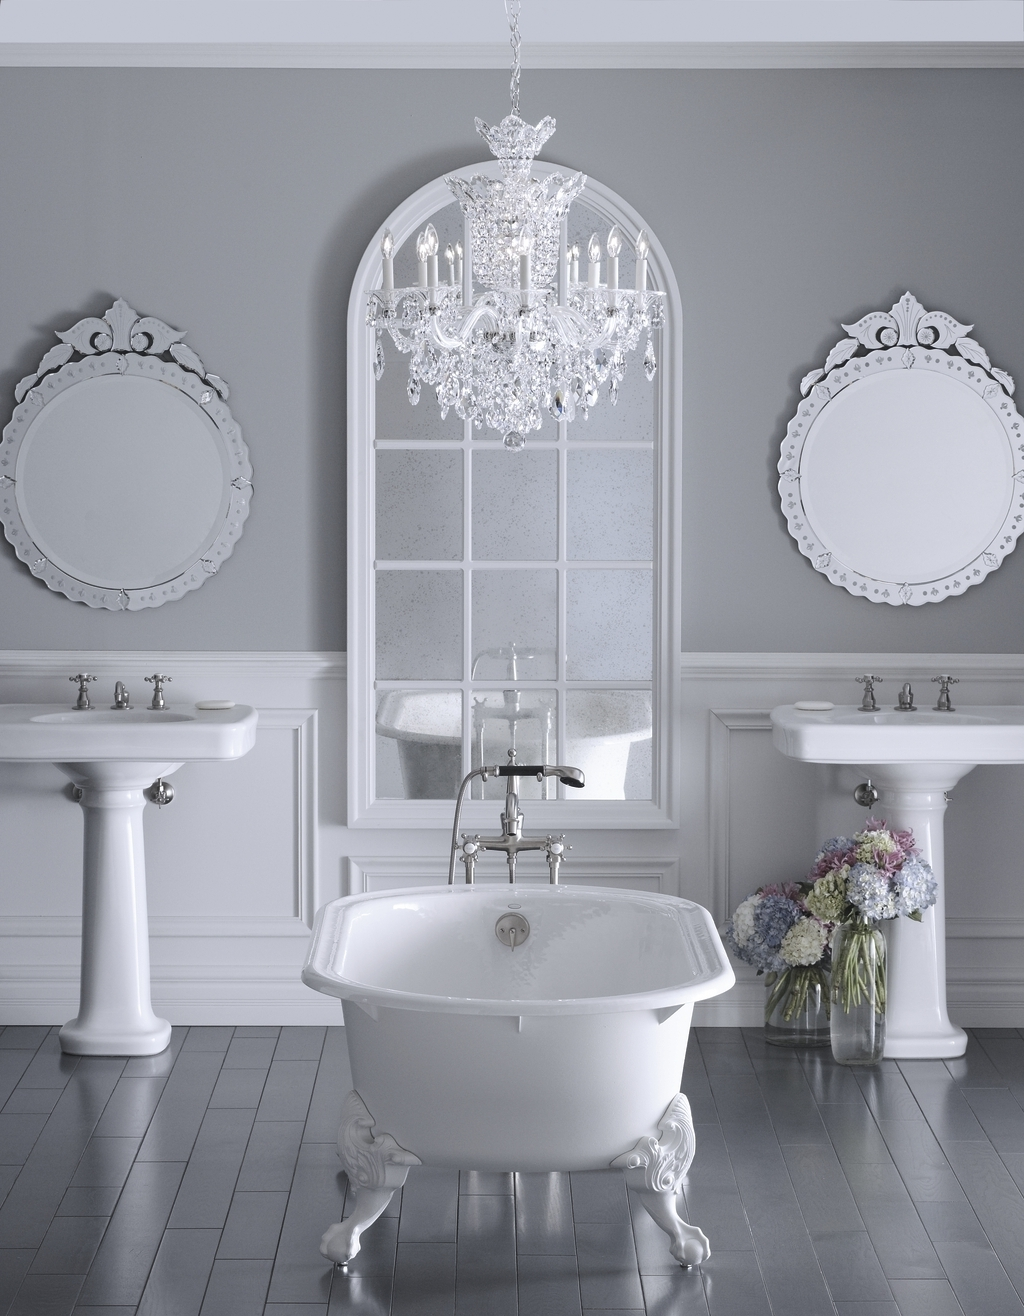 Bathroom Chandelier Lighting Pertaining To Popular Chandeliers Design : Fabulous Wondrous Bathtub Photos Glamorous (View 6 of 20)